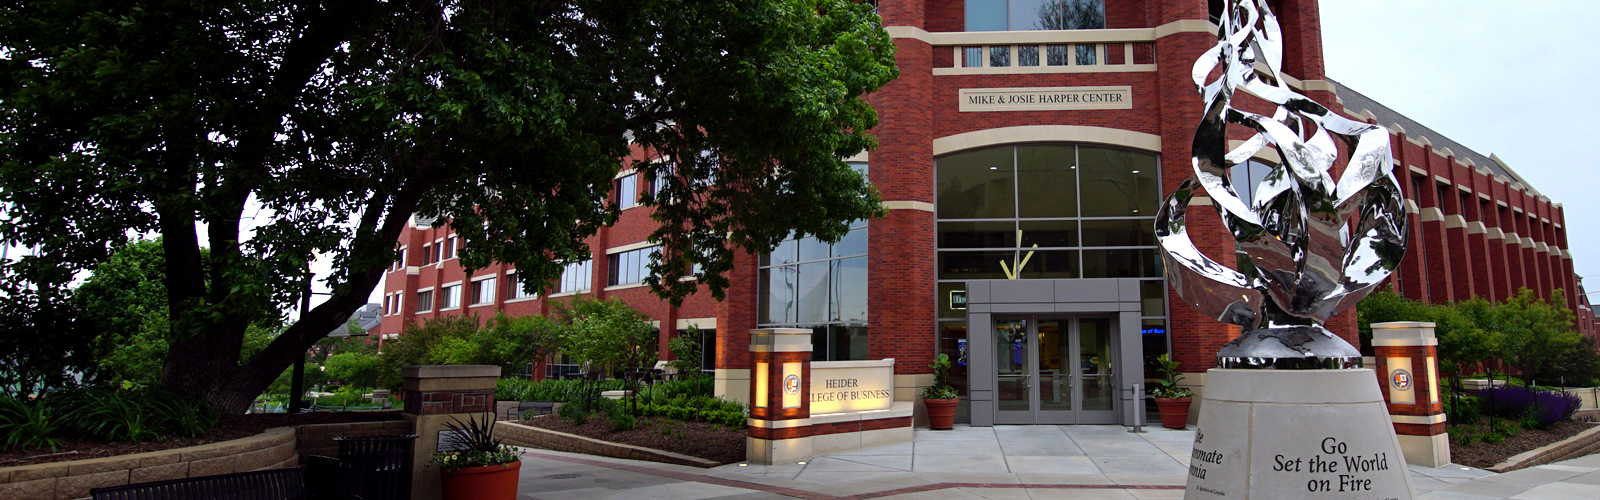 Heider College of Business News & Events